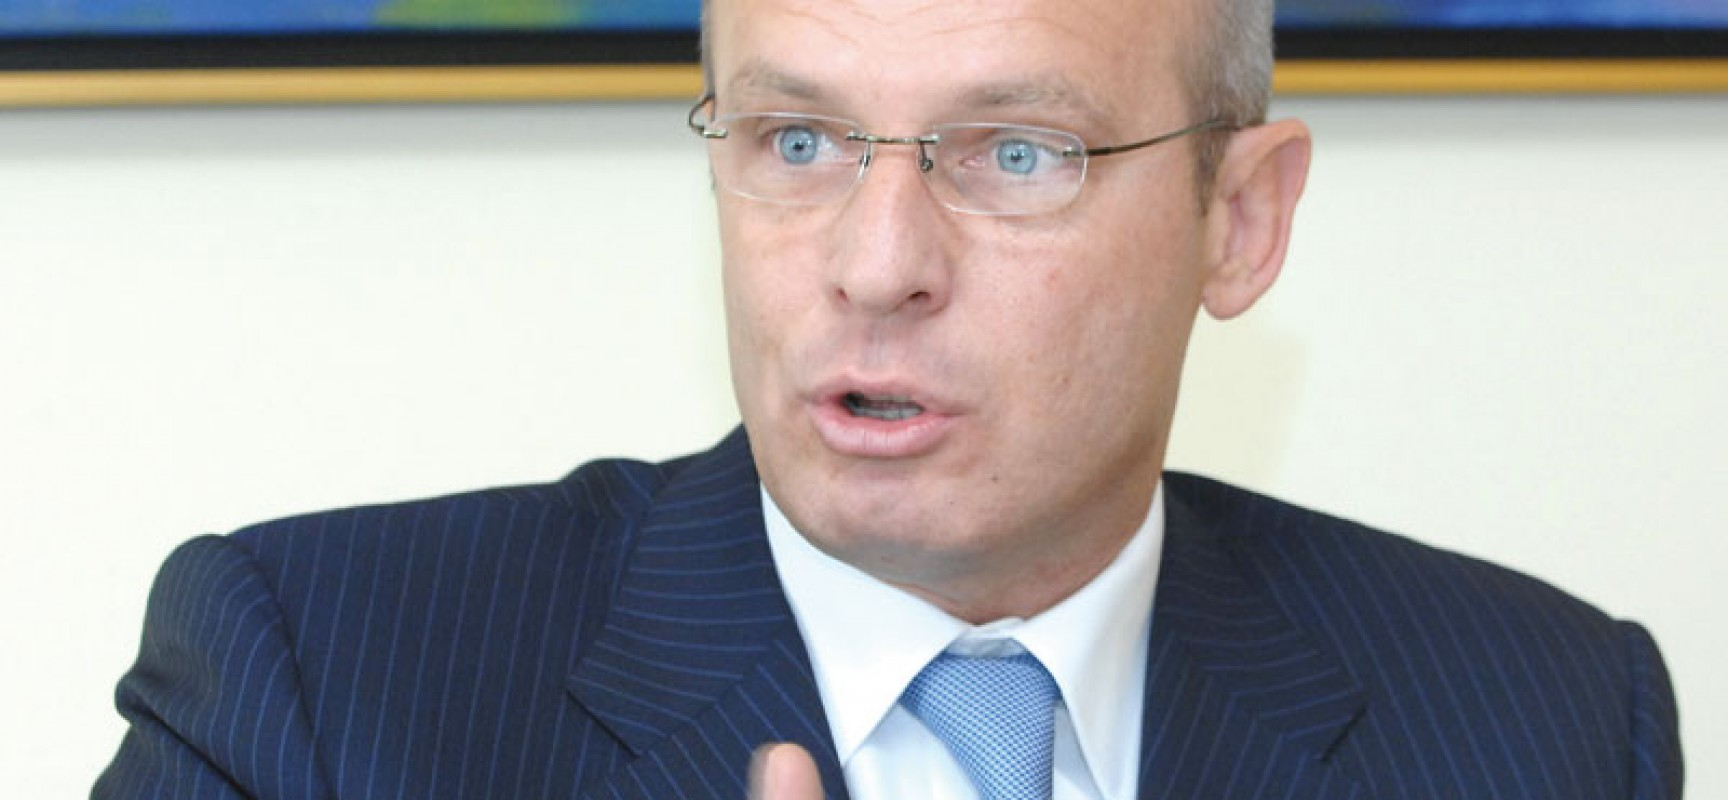 Beko badly wounded, Vucic expects prompt investigation